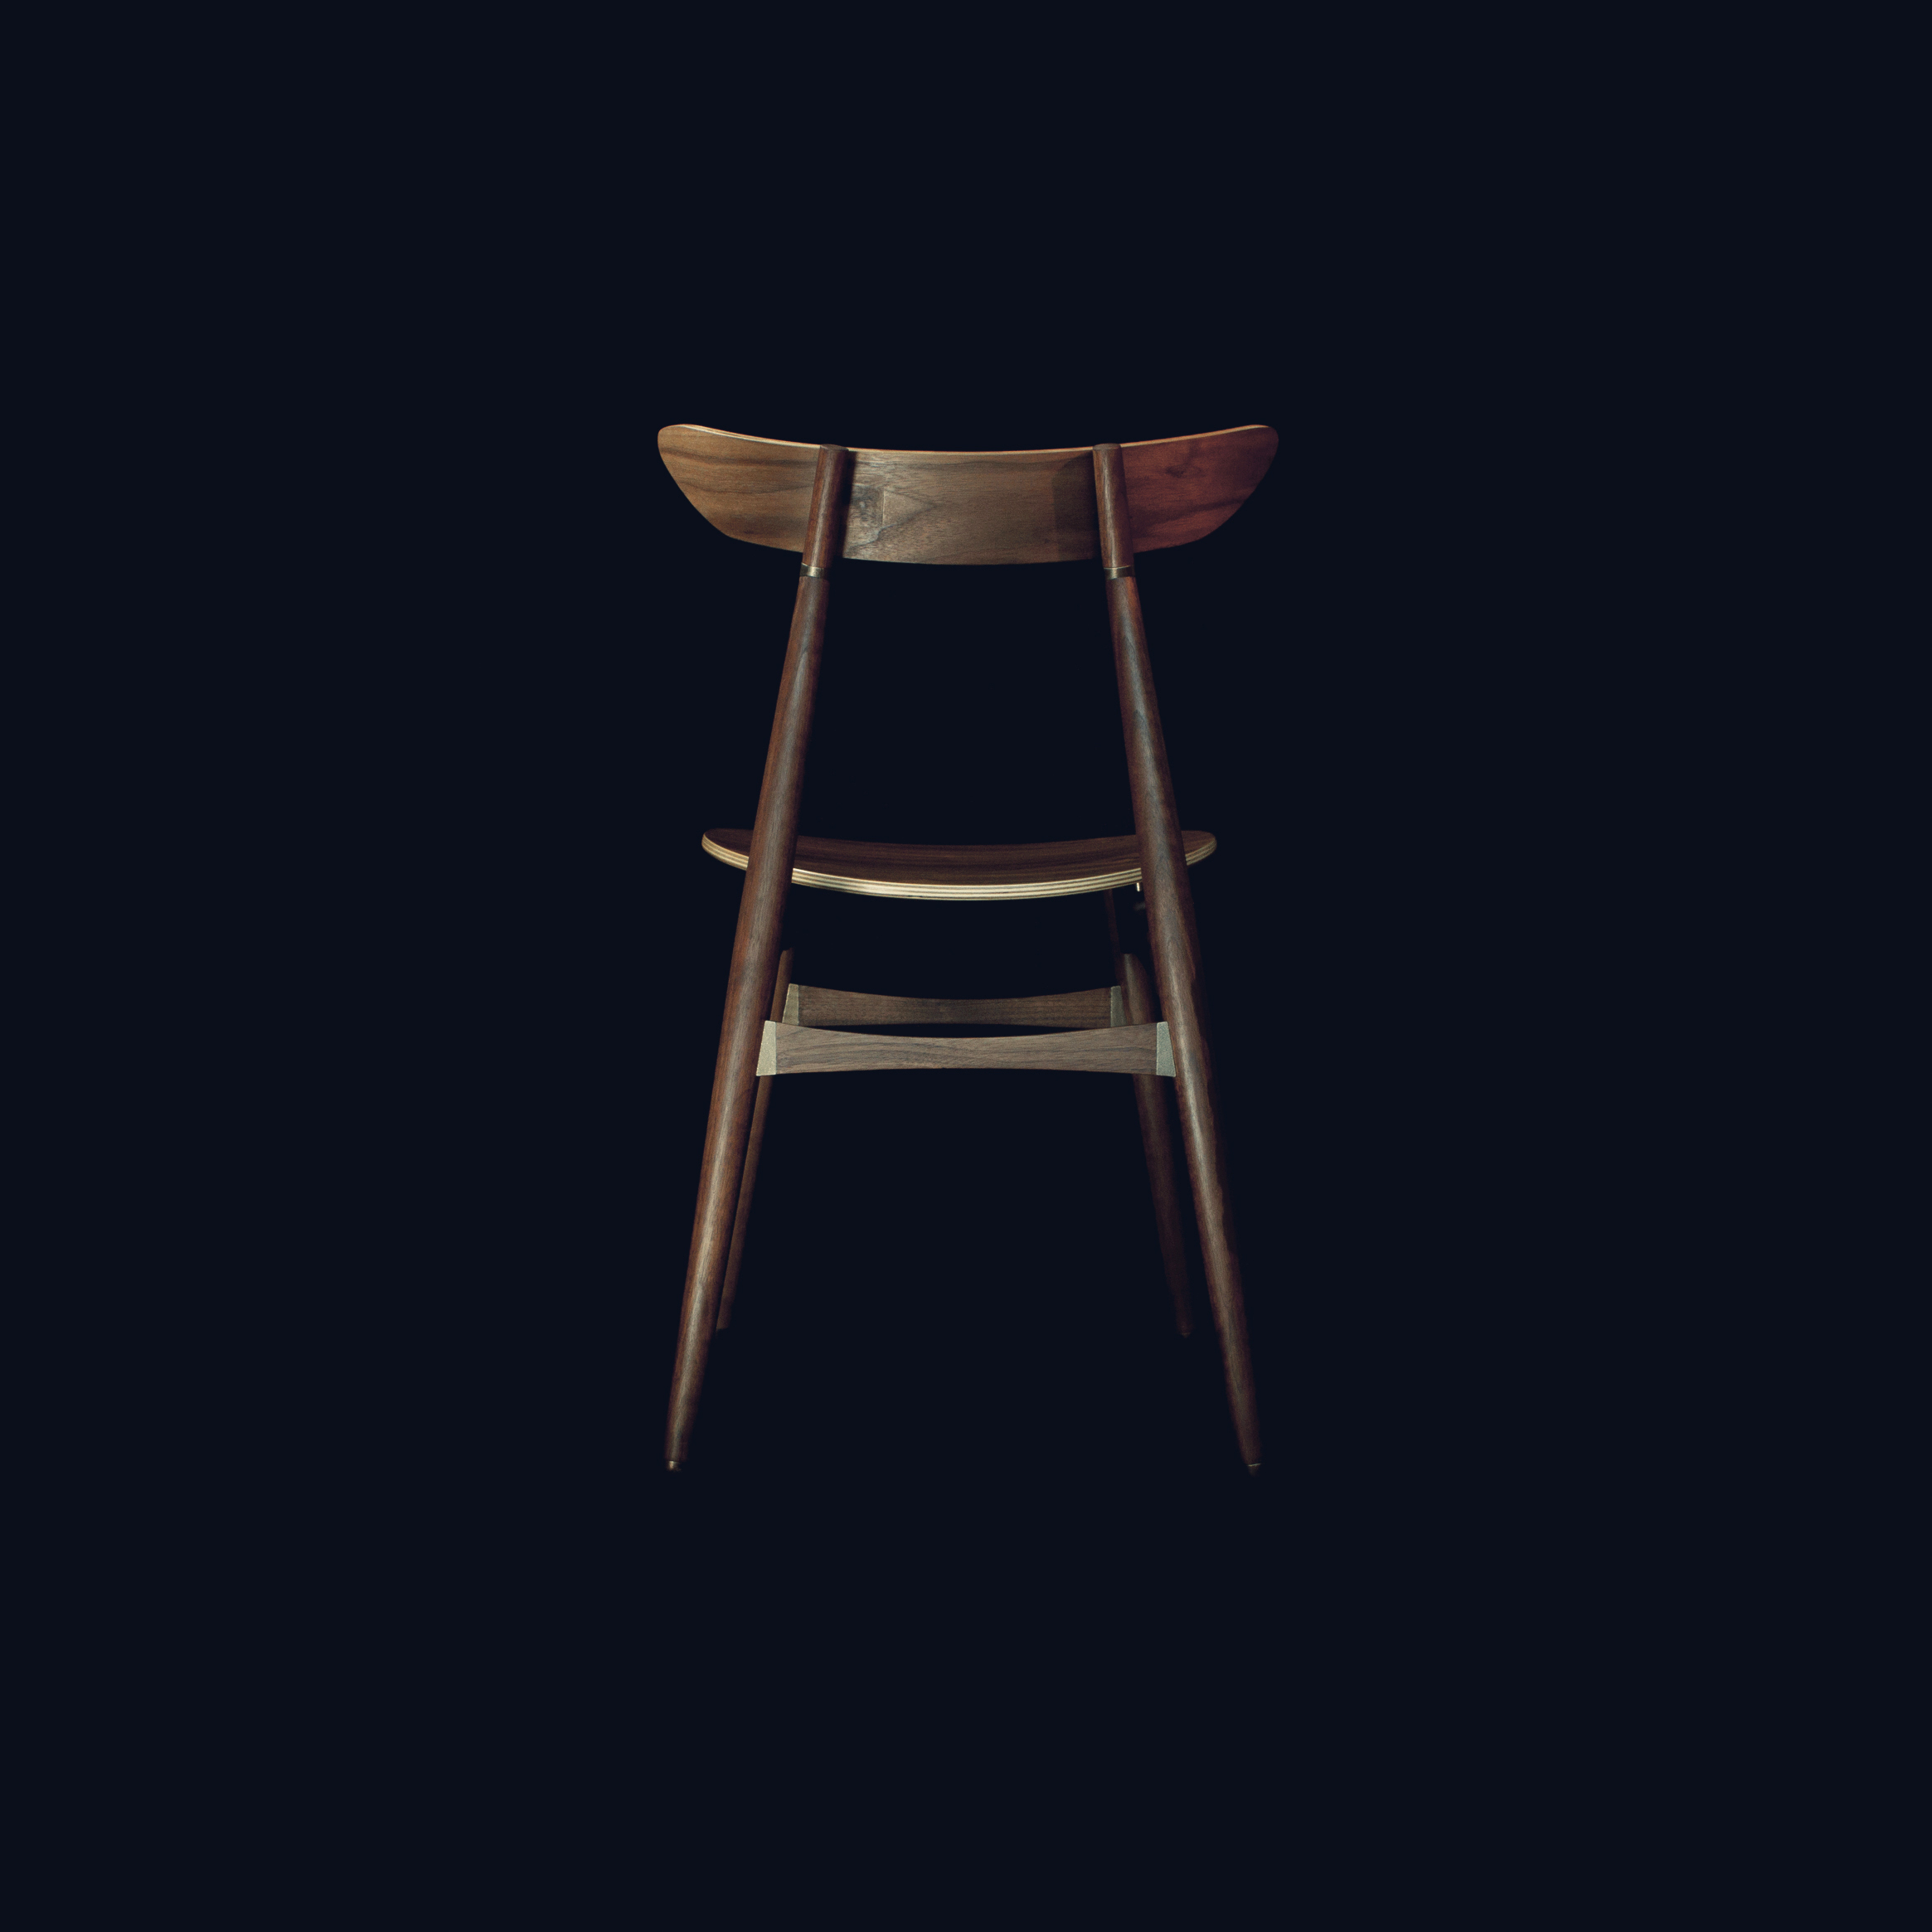 'Jodie' chair in 3D printed polished bronzed steel, walnut & plywood